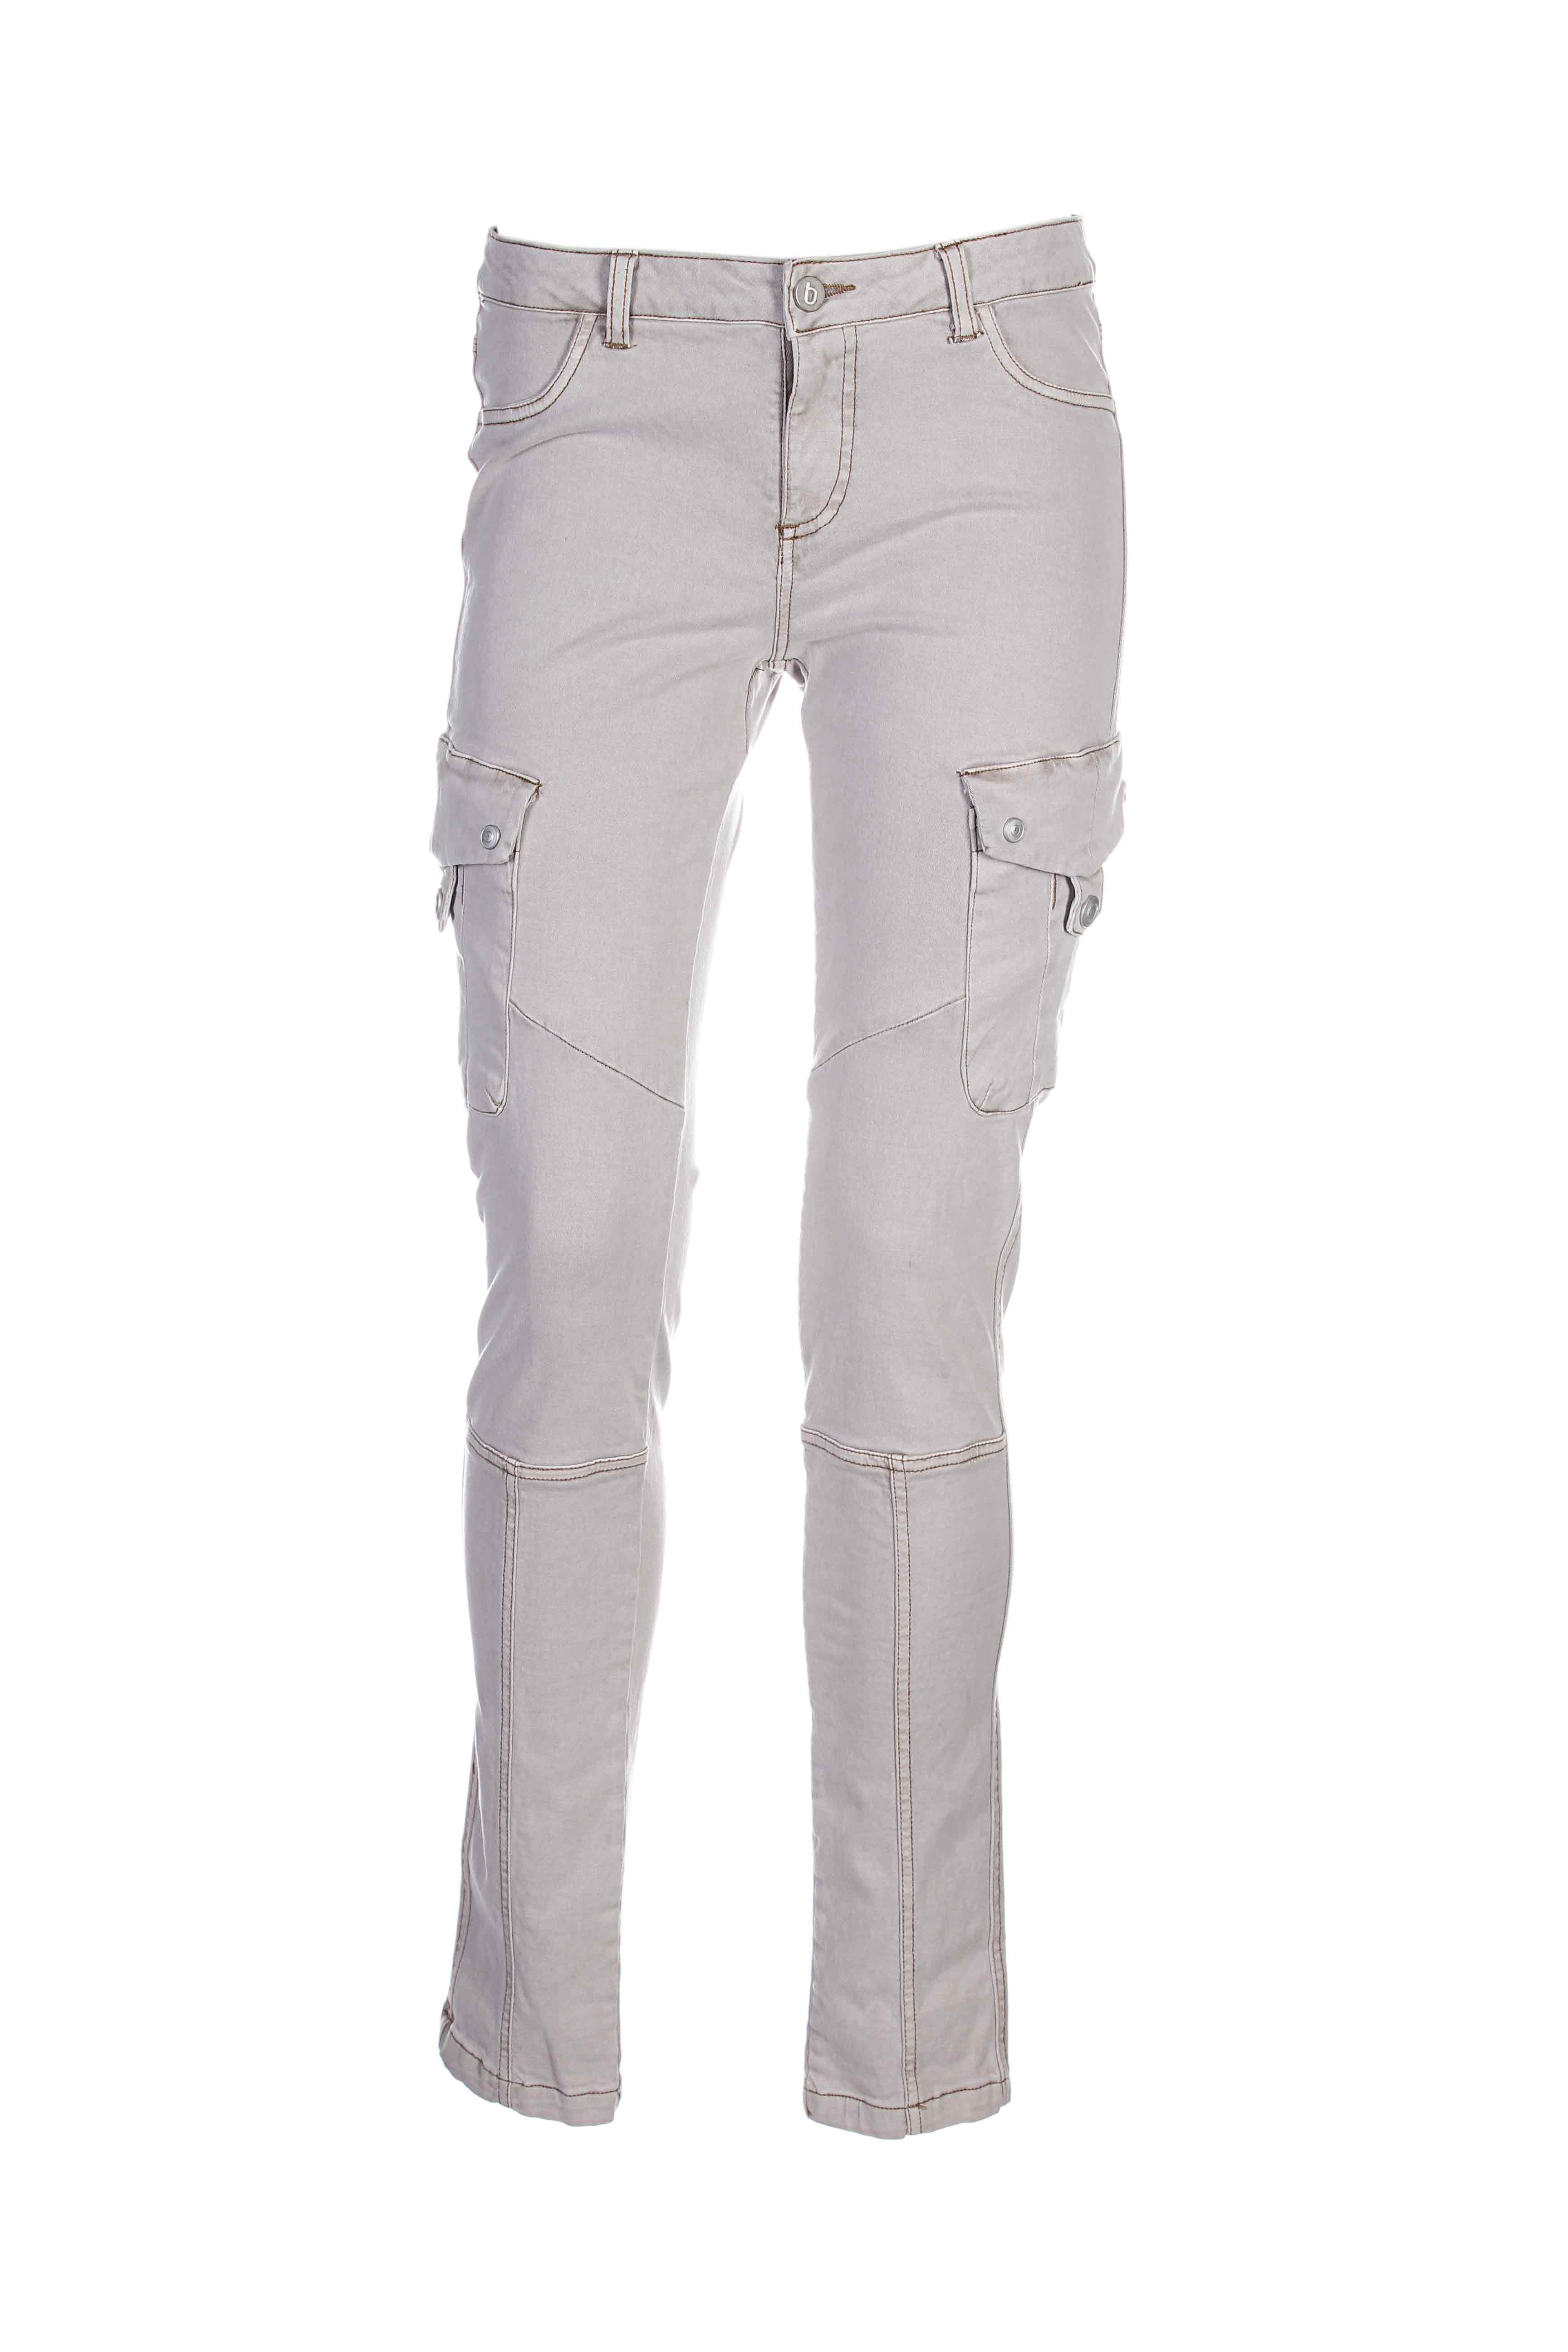 B.YOUNG Jean BEIGE Jean coupe slim FEMME (photo)